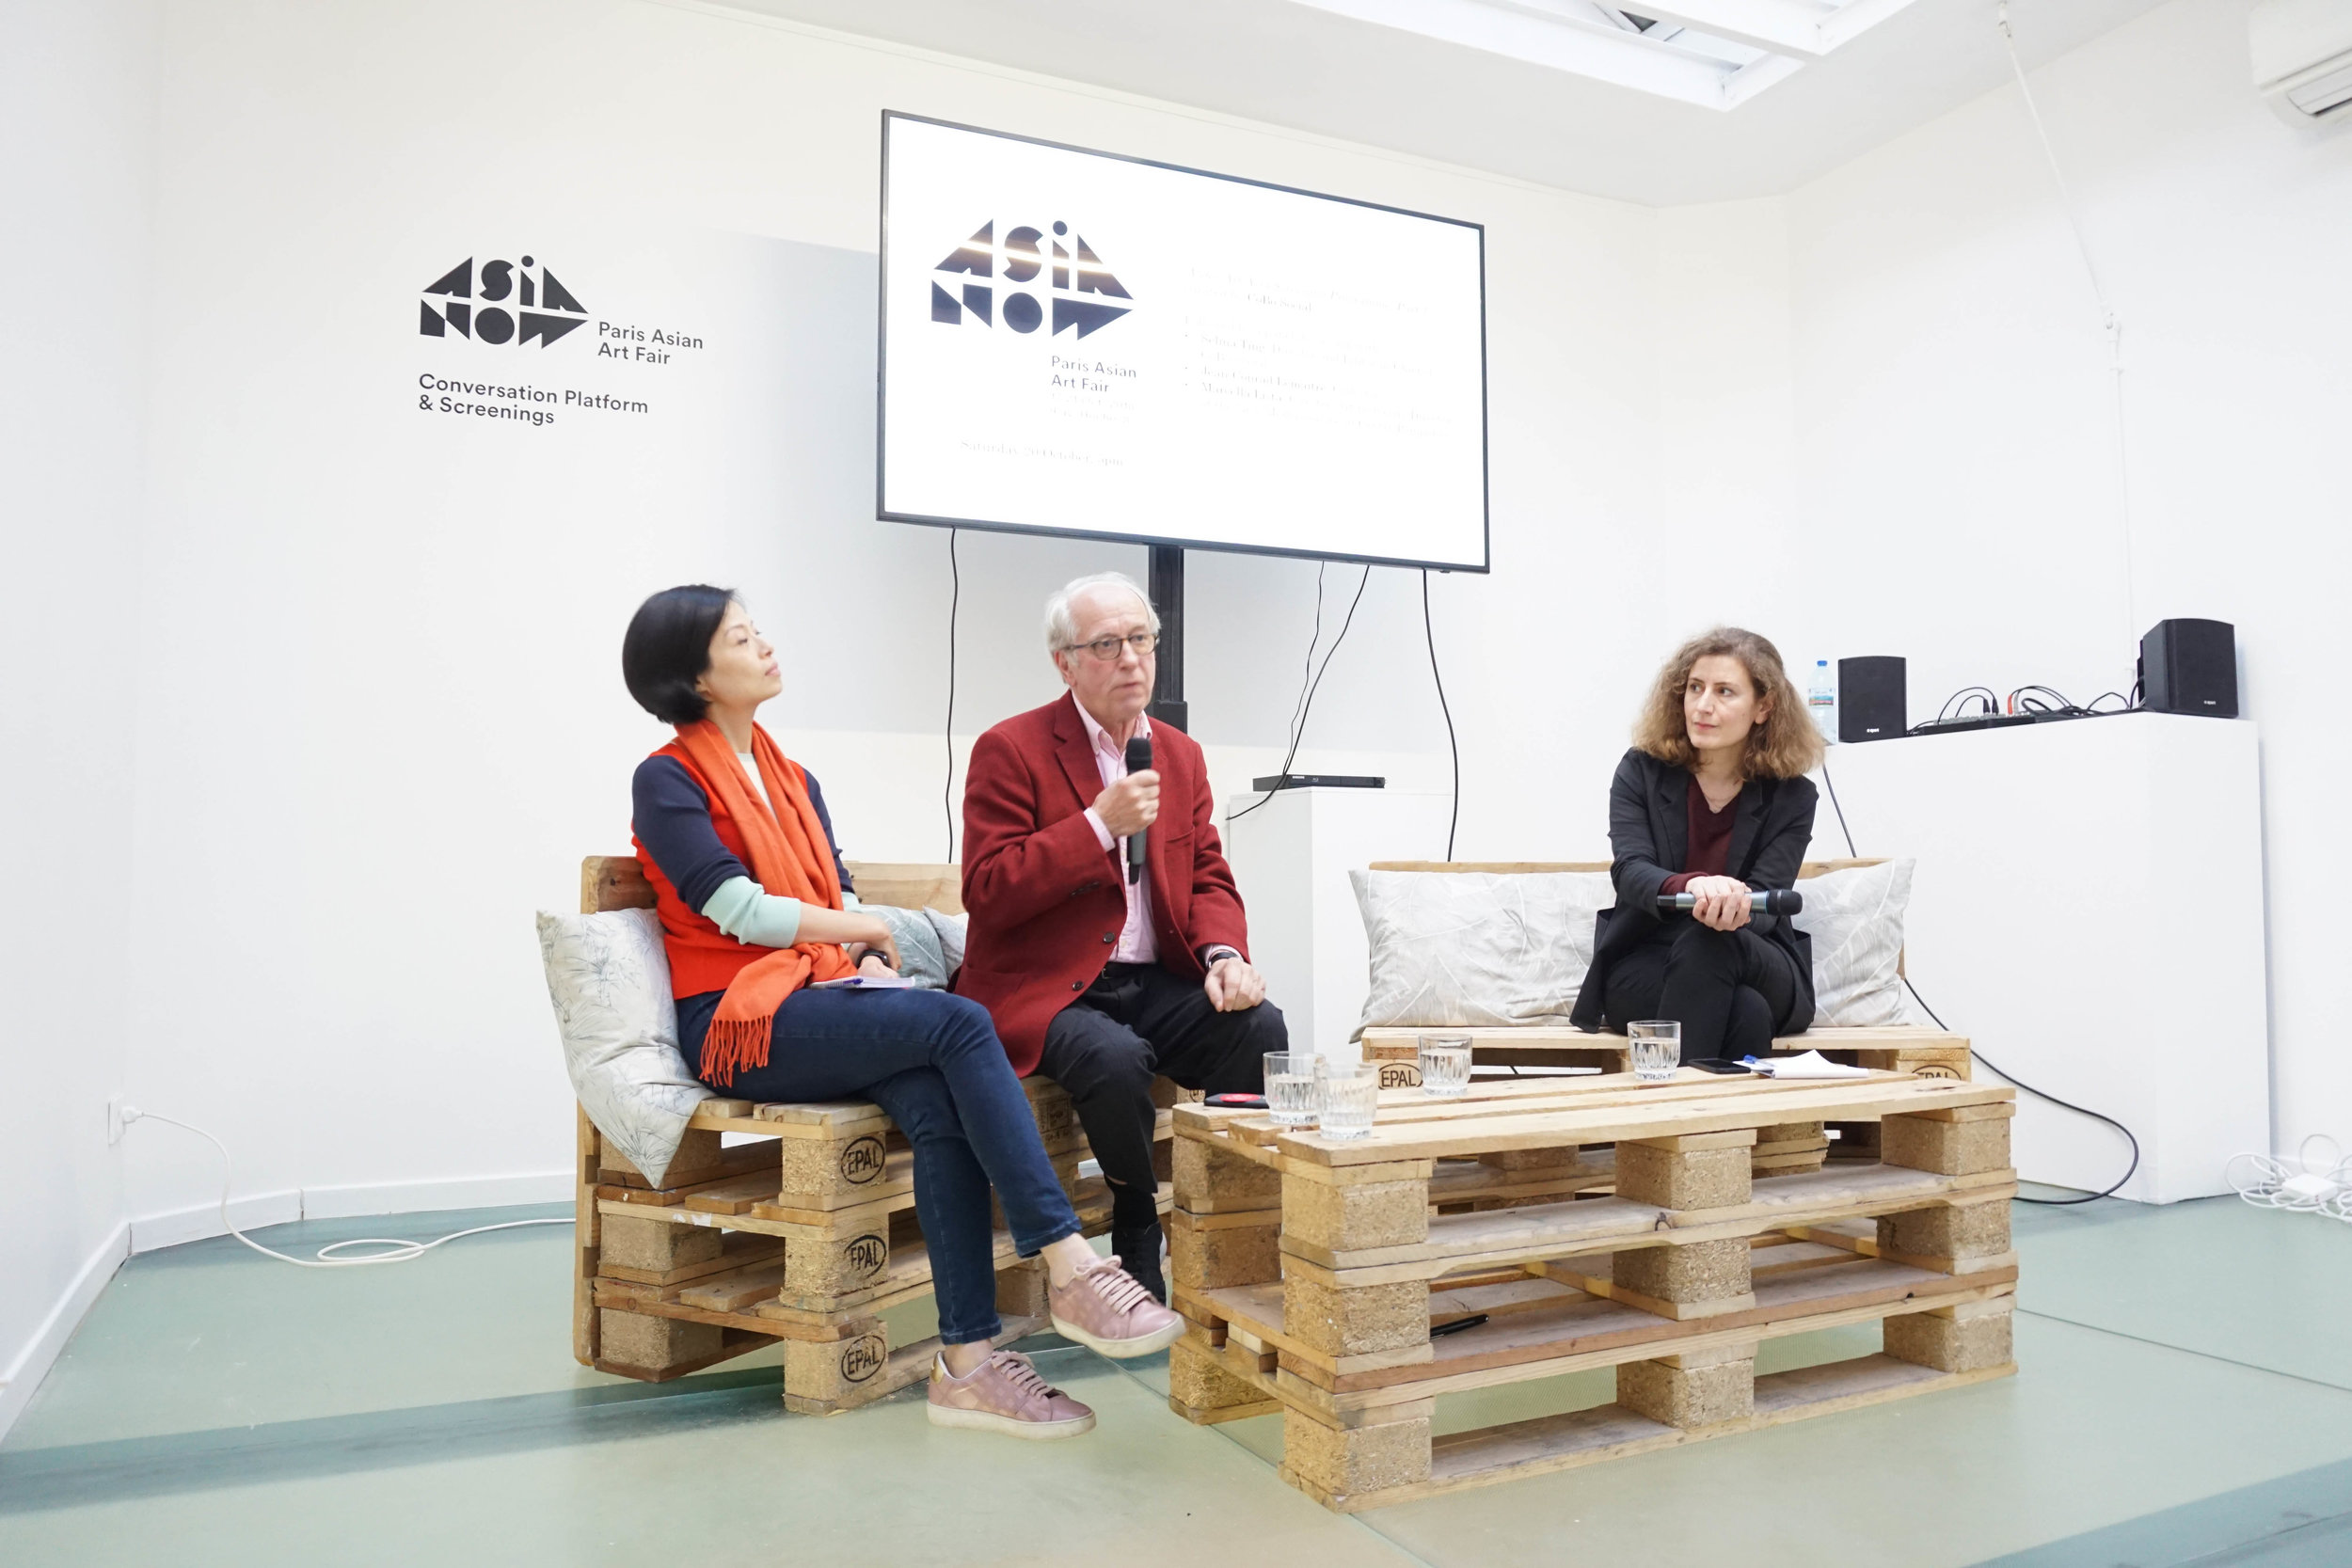 Selina Ting, director and editor-in-chief of Cobo Social,  Isabelle and Jean-Conrad Lemaître, collectors, and Marcella Lista, curator, art historian, Centre Pompidou